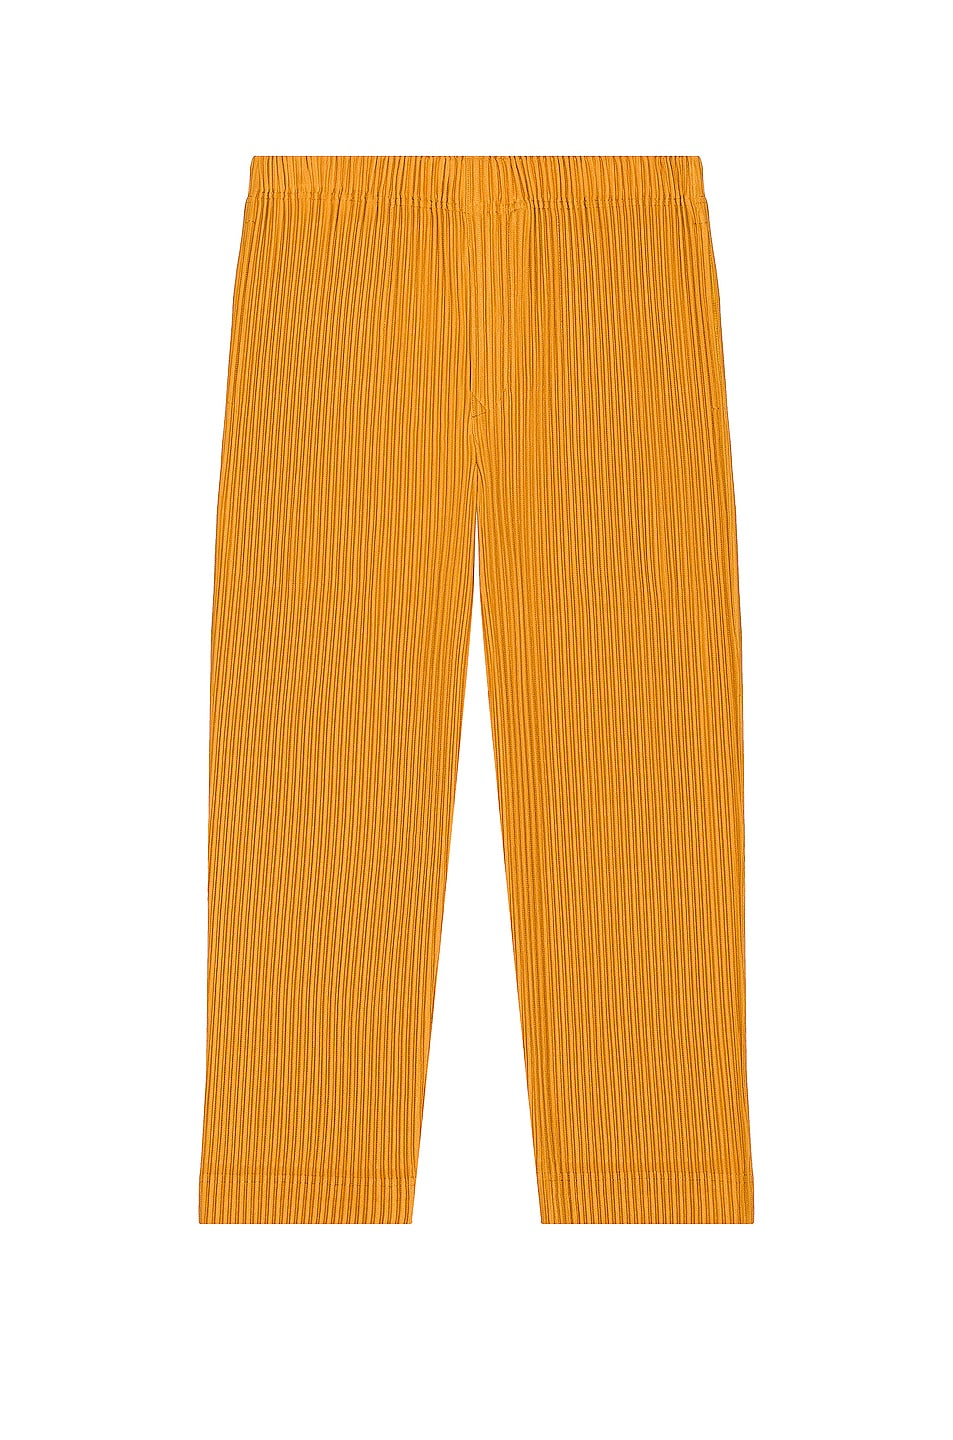 Image 1 of Homme Plisse Issey Miyake Pants in Yellow Ocher